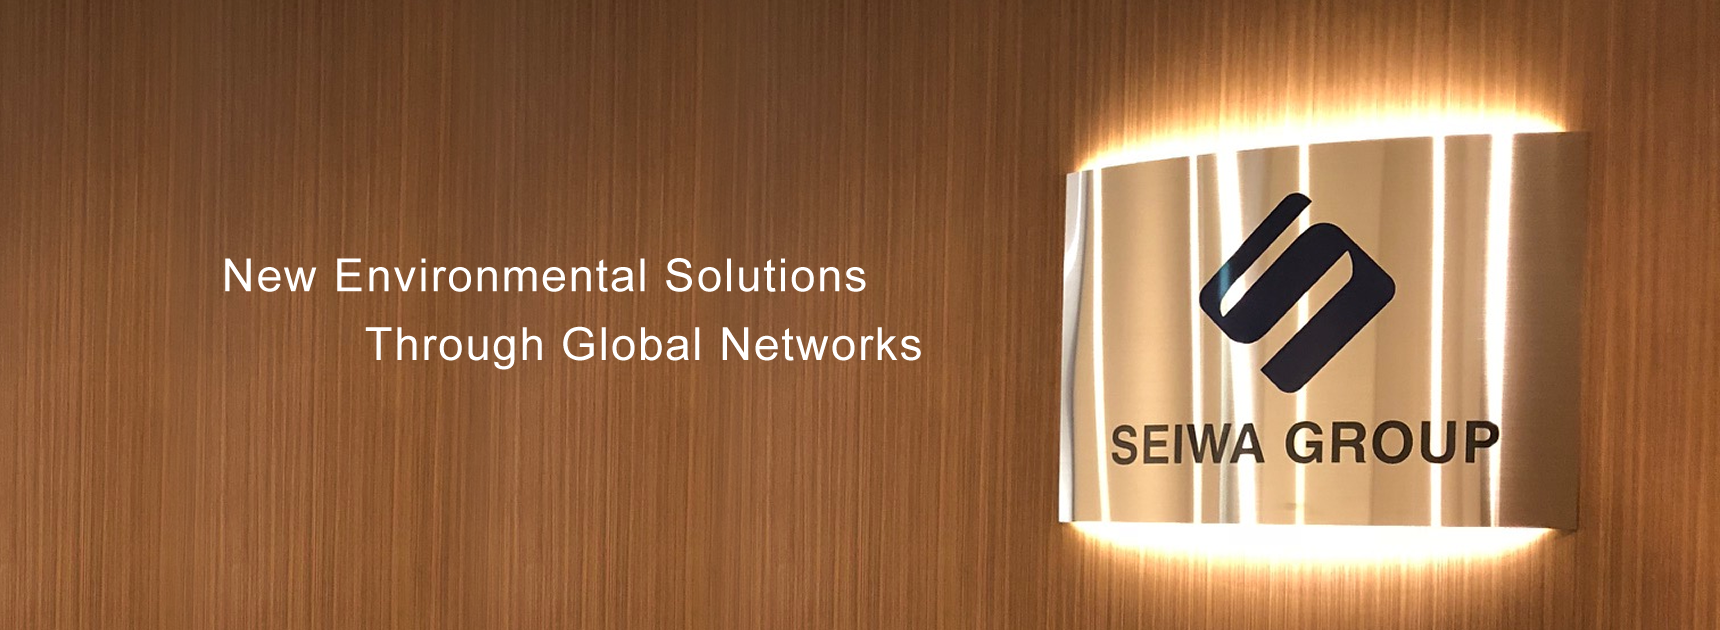 New Environmental Solutions Through Global Networks